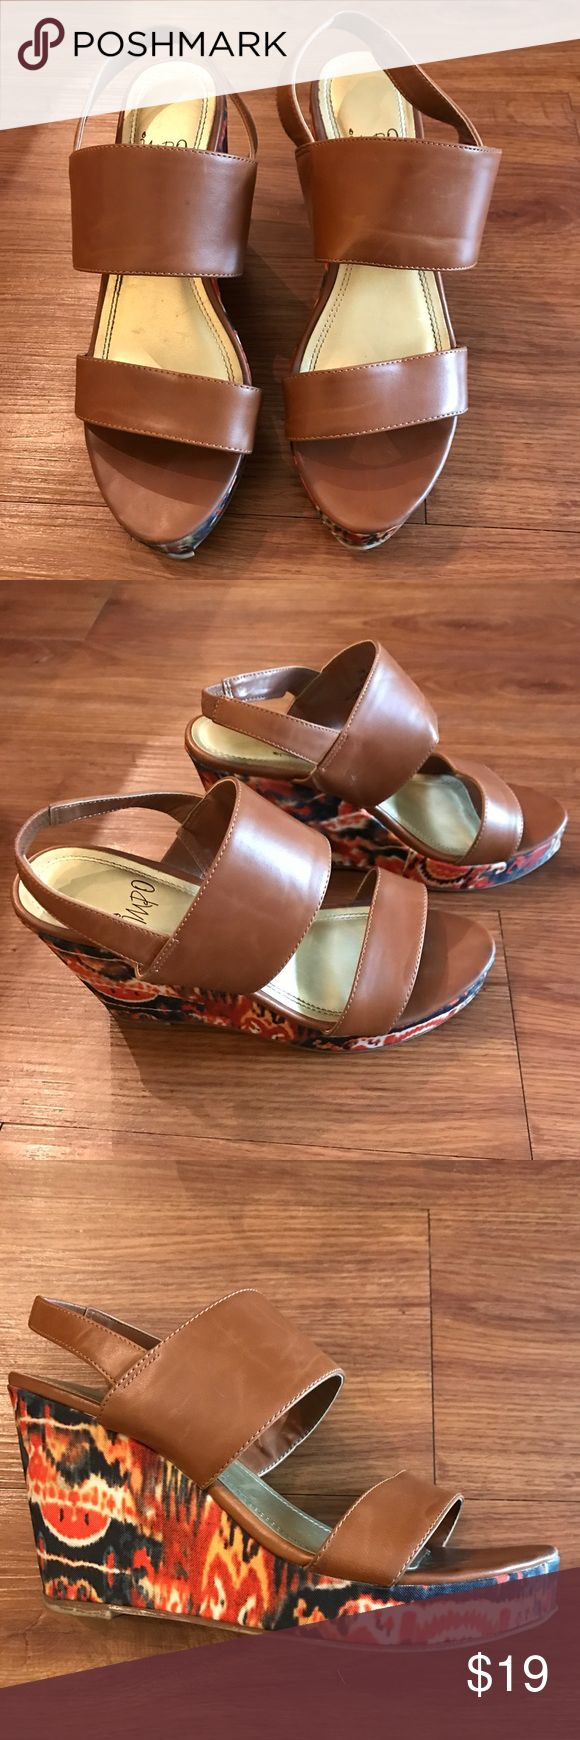 Tan/multi-colored wedges Tan wedges impo Shoes Wedges